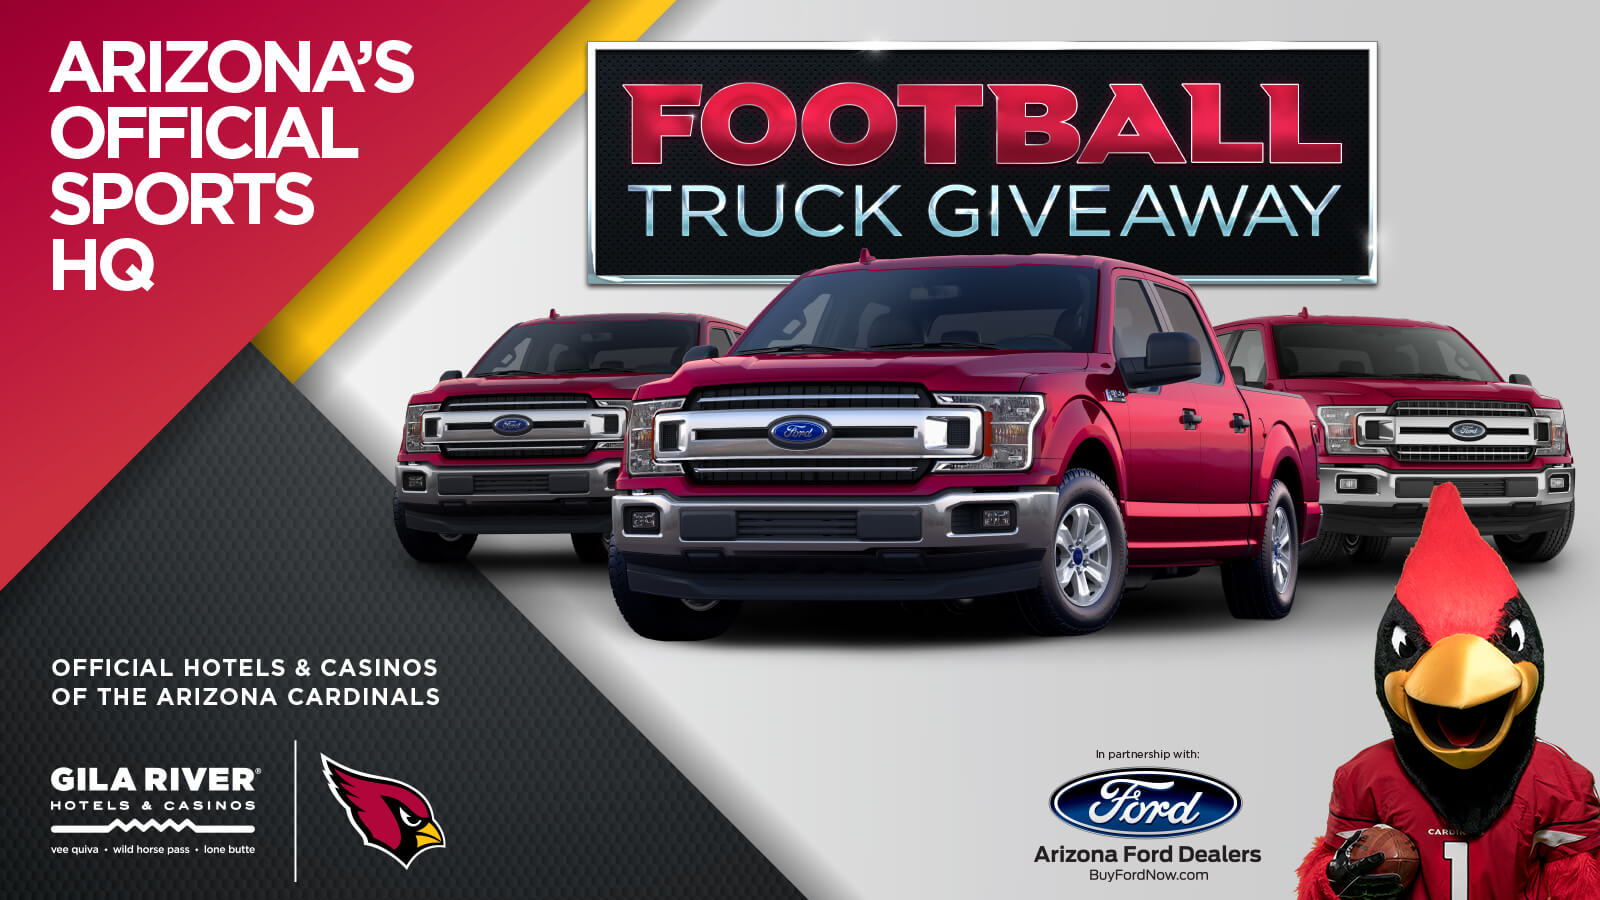 Football Truck Giveaway